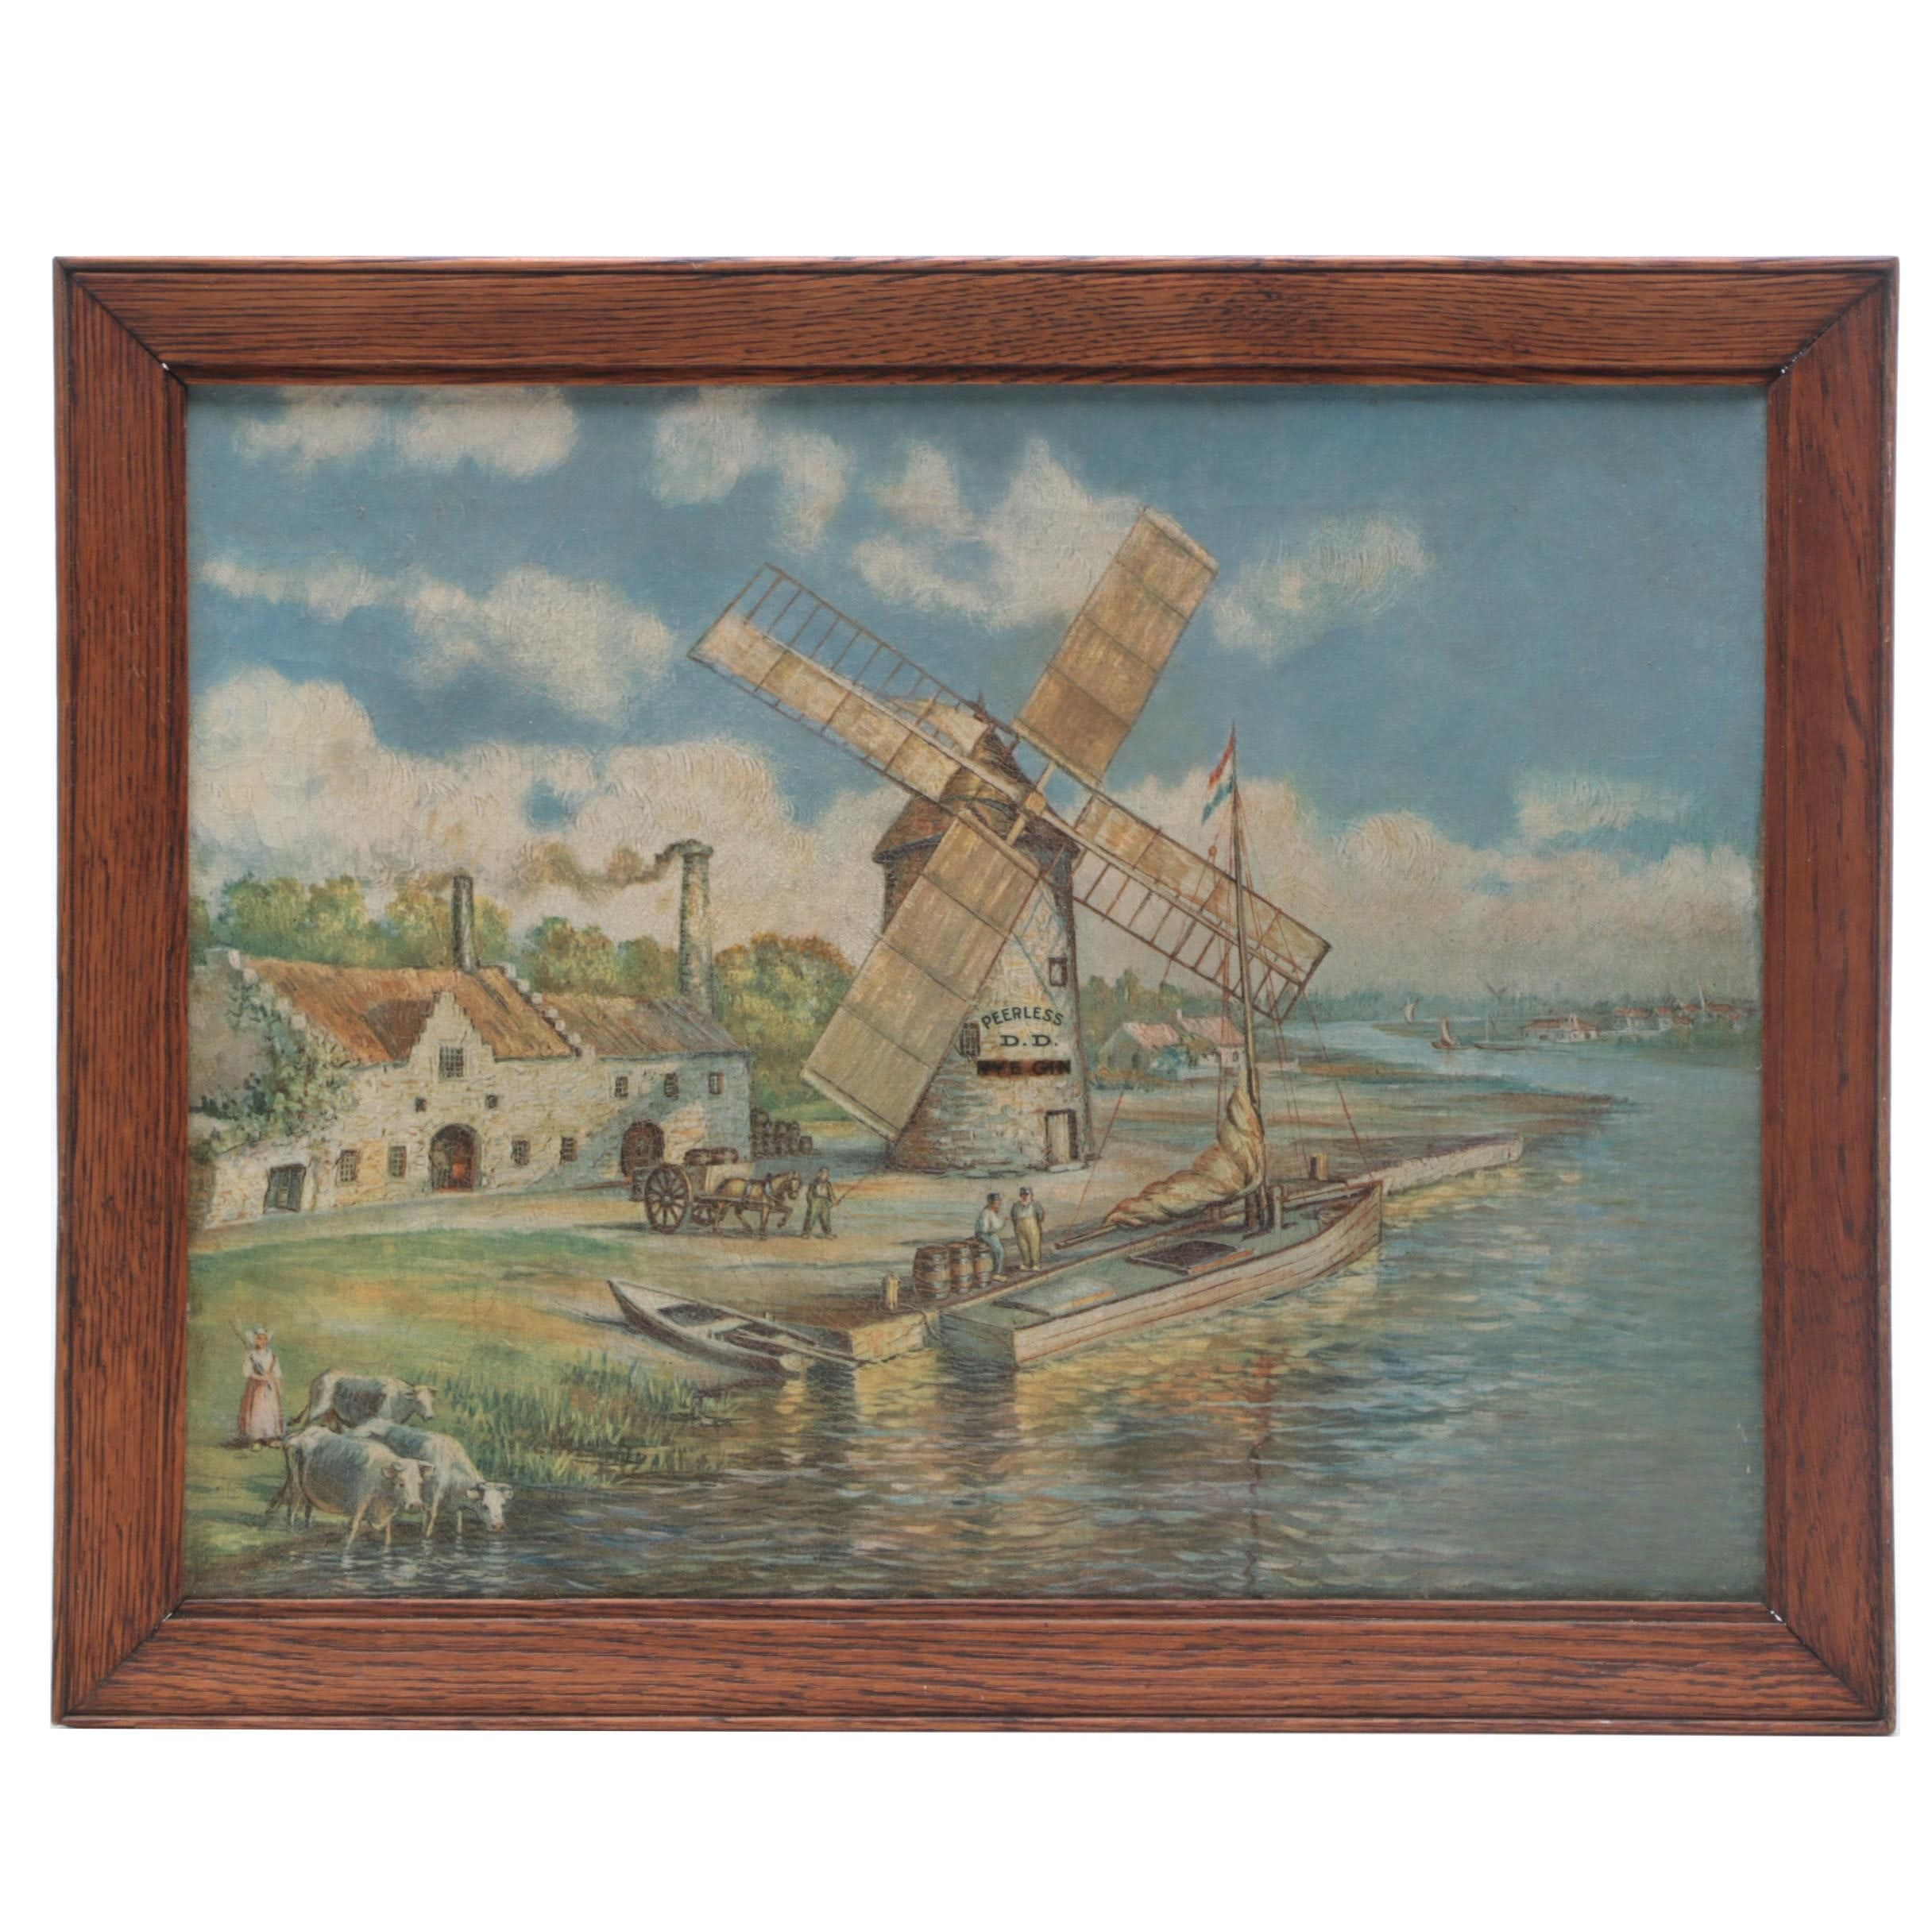 Peerless D. D. Rye Gin Advertising Lithograph on Canvas, Early 20th Century